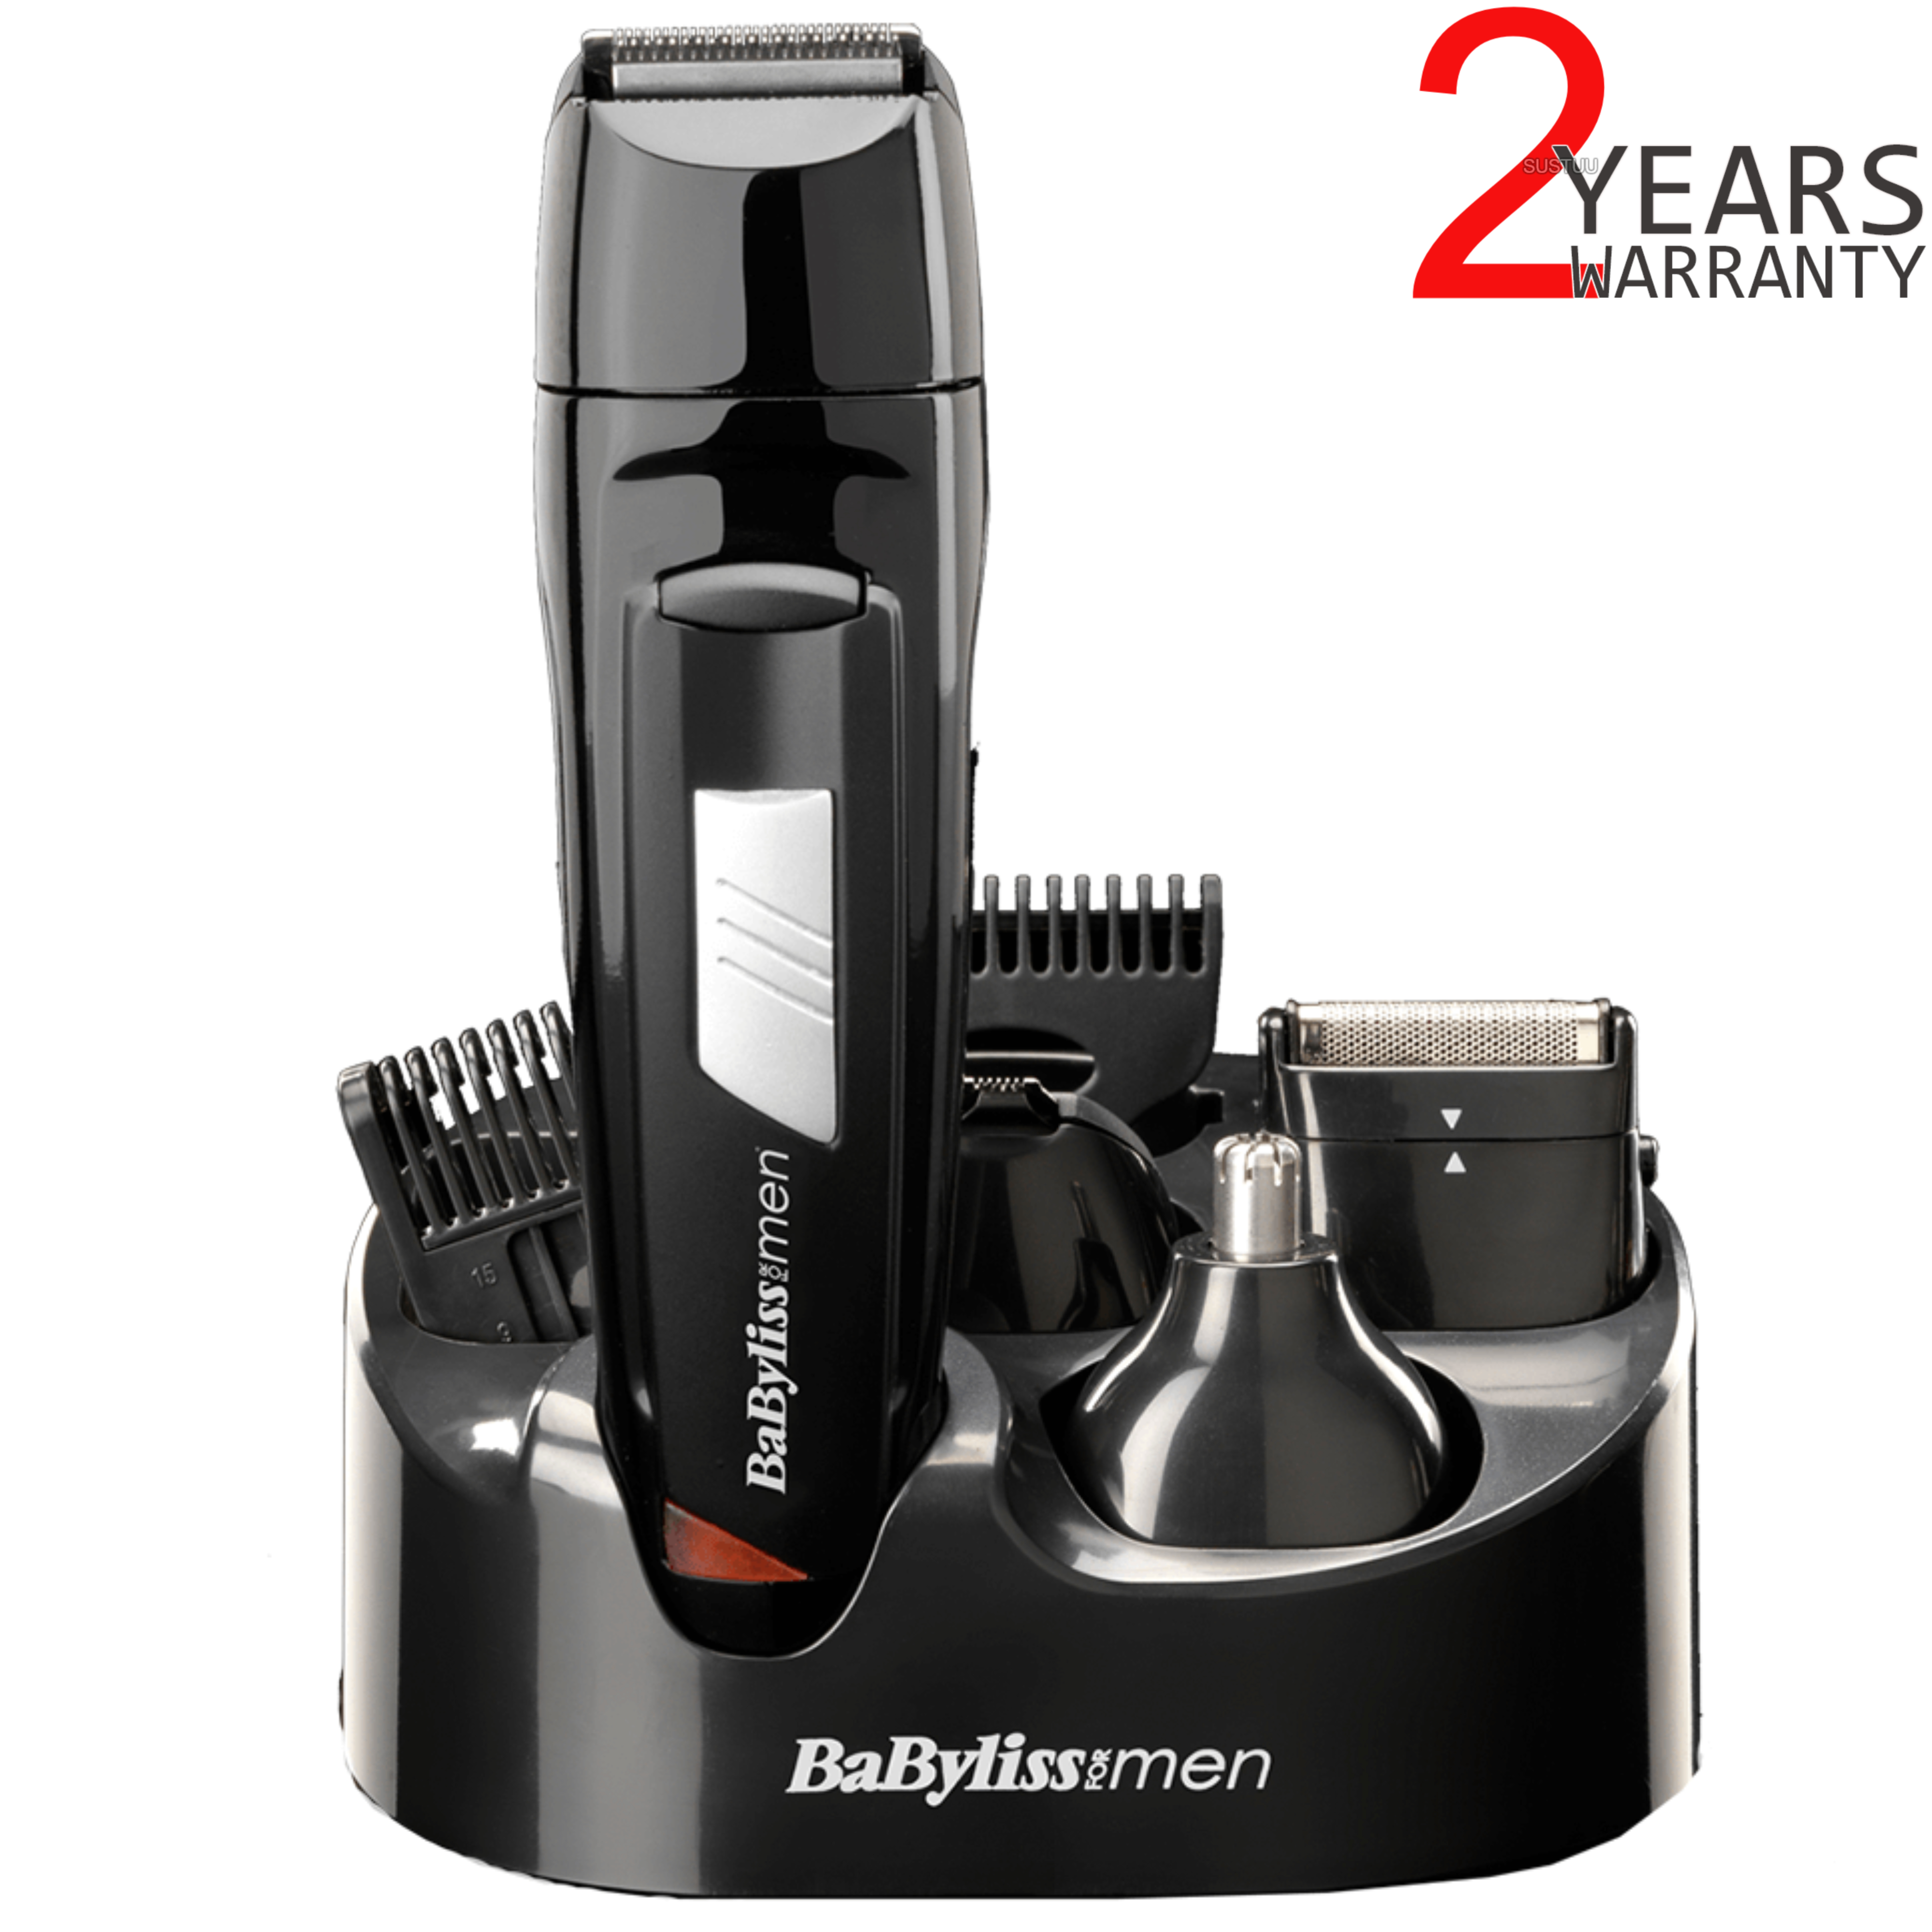 BaByliss 8-in-1 All Over Grooming Shaver Clipper Kit for Men | Rechargeable | 7056CU